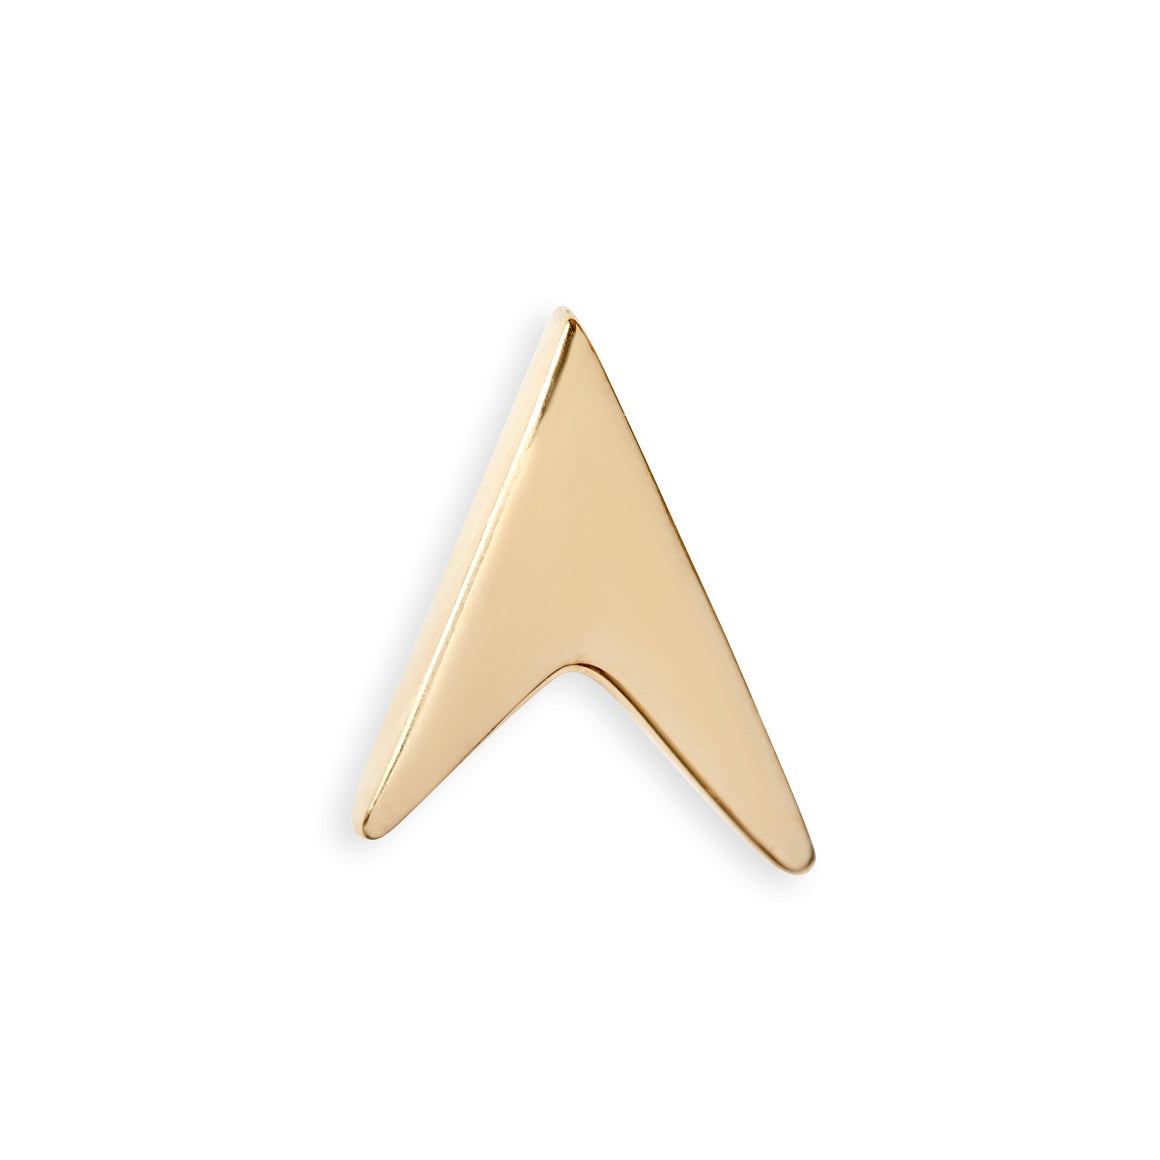 14 kt Gold Arrow Head Stud